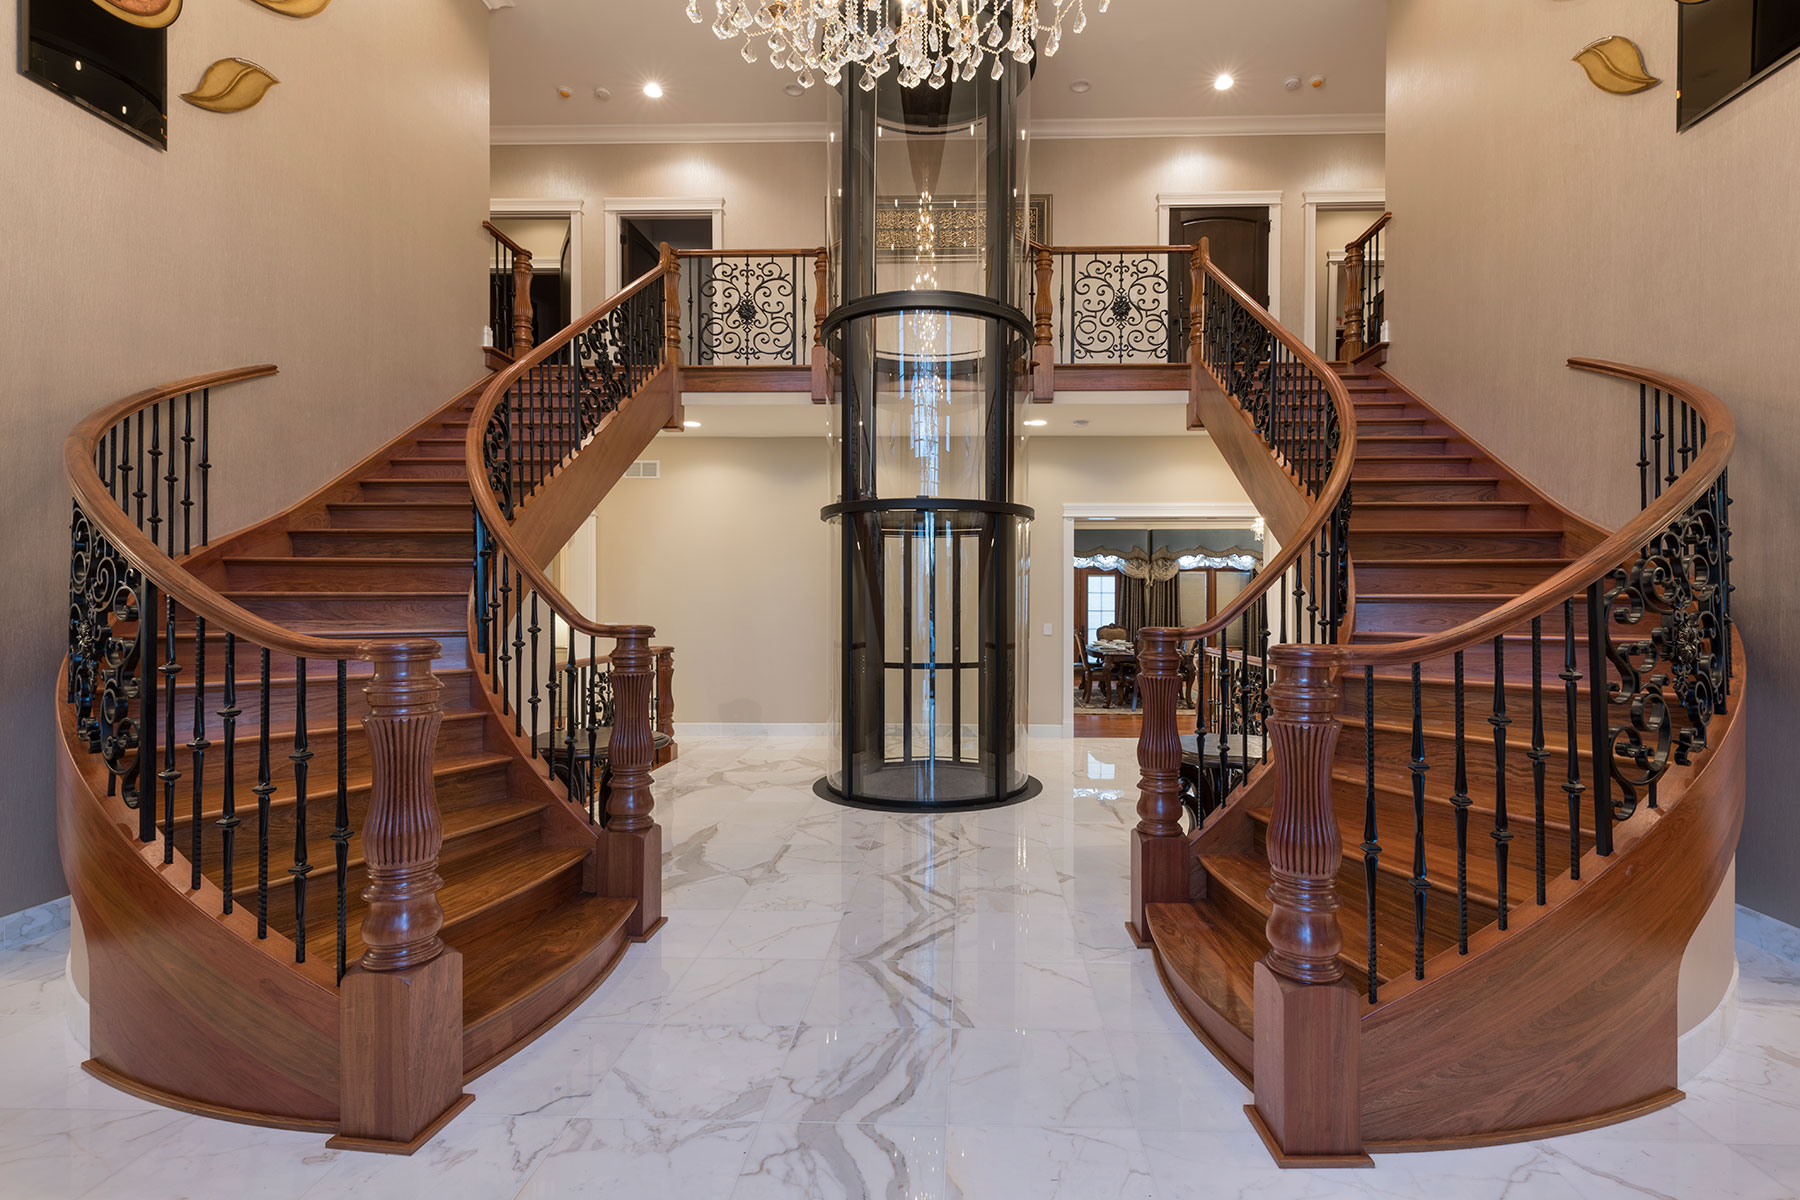 Staircases - Mango Ave., Morton Grove, IL Custom Home. America's Custom Home Builders: New Construction, Remodeling, Restoration Services. Residential and Commercial.